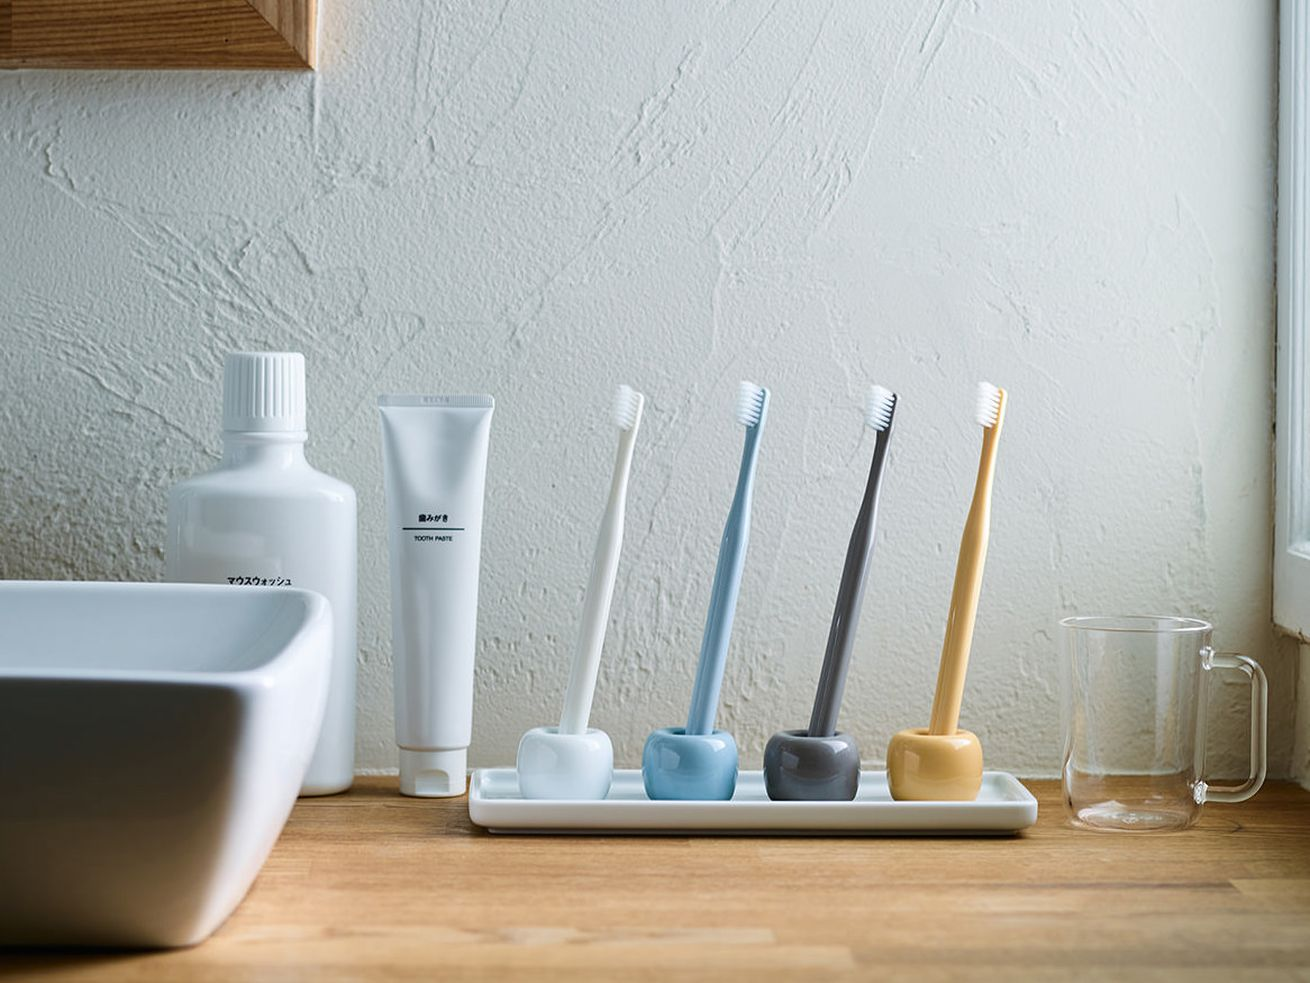 "The Muji Porcelain Toothbrush Stand (<a class=""ql-link"" href=""https://www.amazon.com/Muji-White-Porcelain-Tooth-Brush/dp/B00ICIGGI2"" target=""_blank"">$7.02</a>) is a simple, helpful tool that makes a hotel bathroom feel a bit more like home."